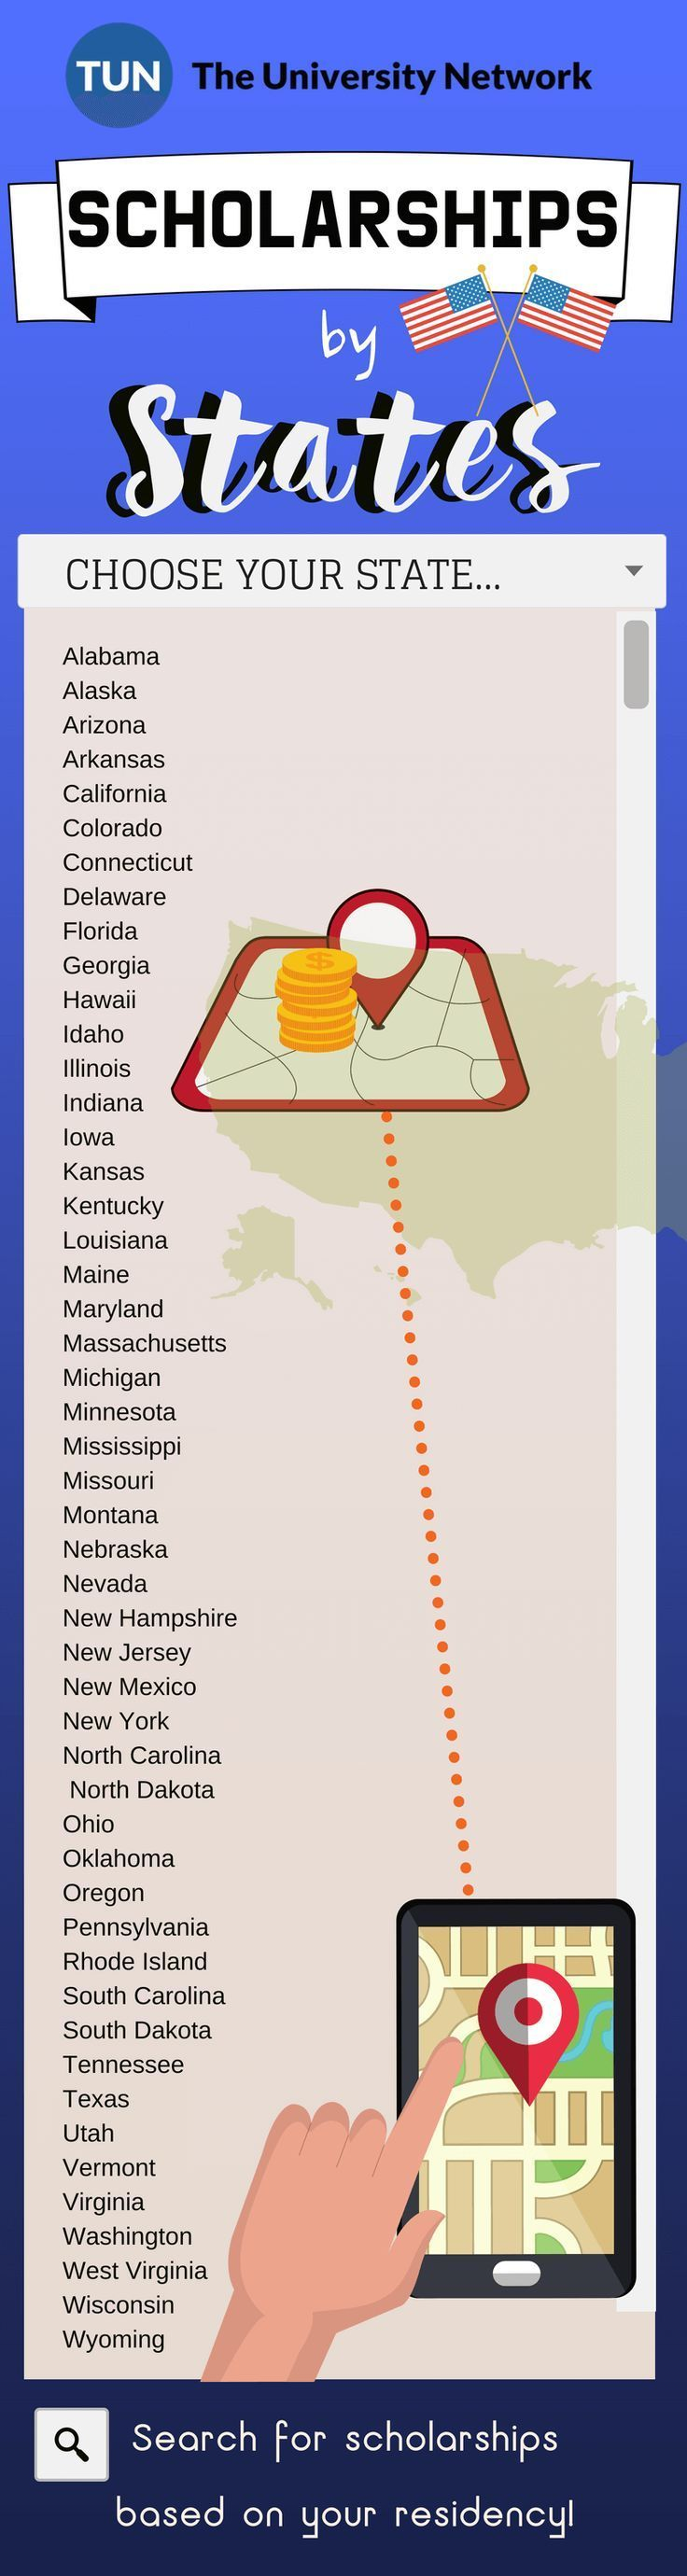 Find scholarships based on your state of residency there